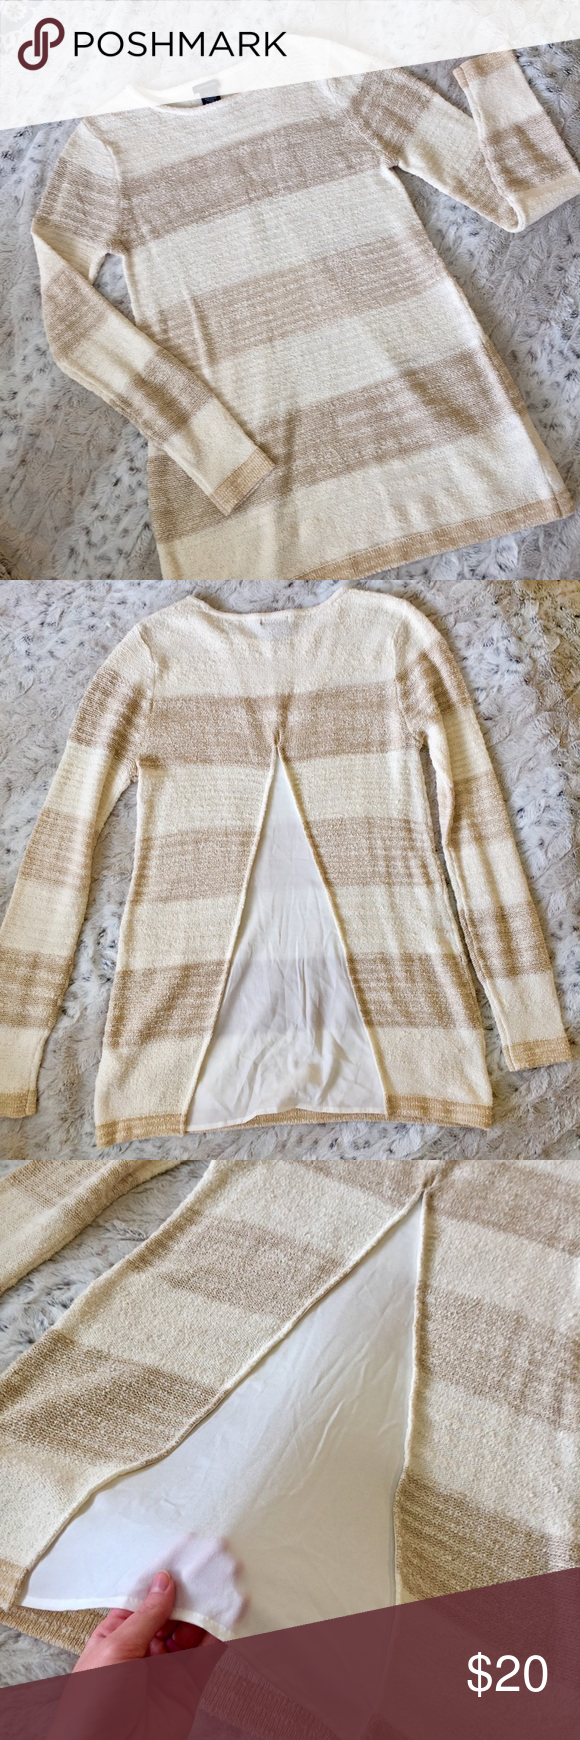 Gorgeous Calvin Klein Tunic Sweater Only worn once! Like new. Comfy long sweater with cool sheer back. Very stylish and classic! Great colors. Jeans and boots are a great combo! Calvin Klein Sweaters